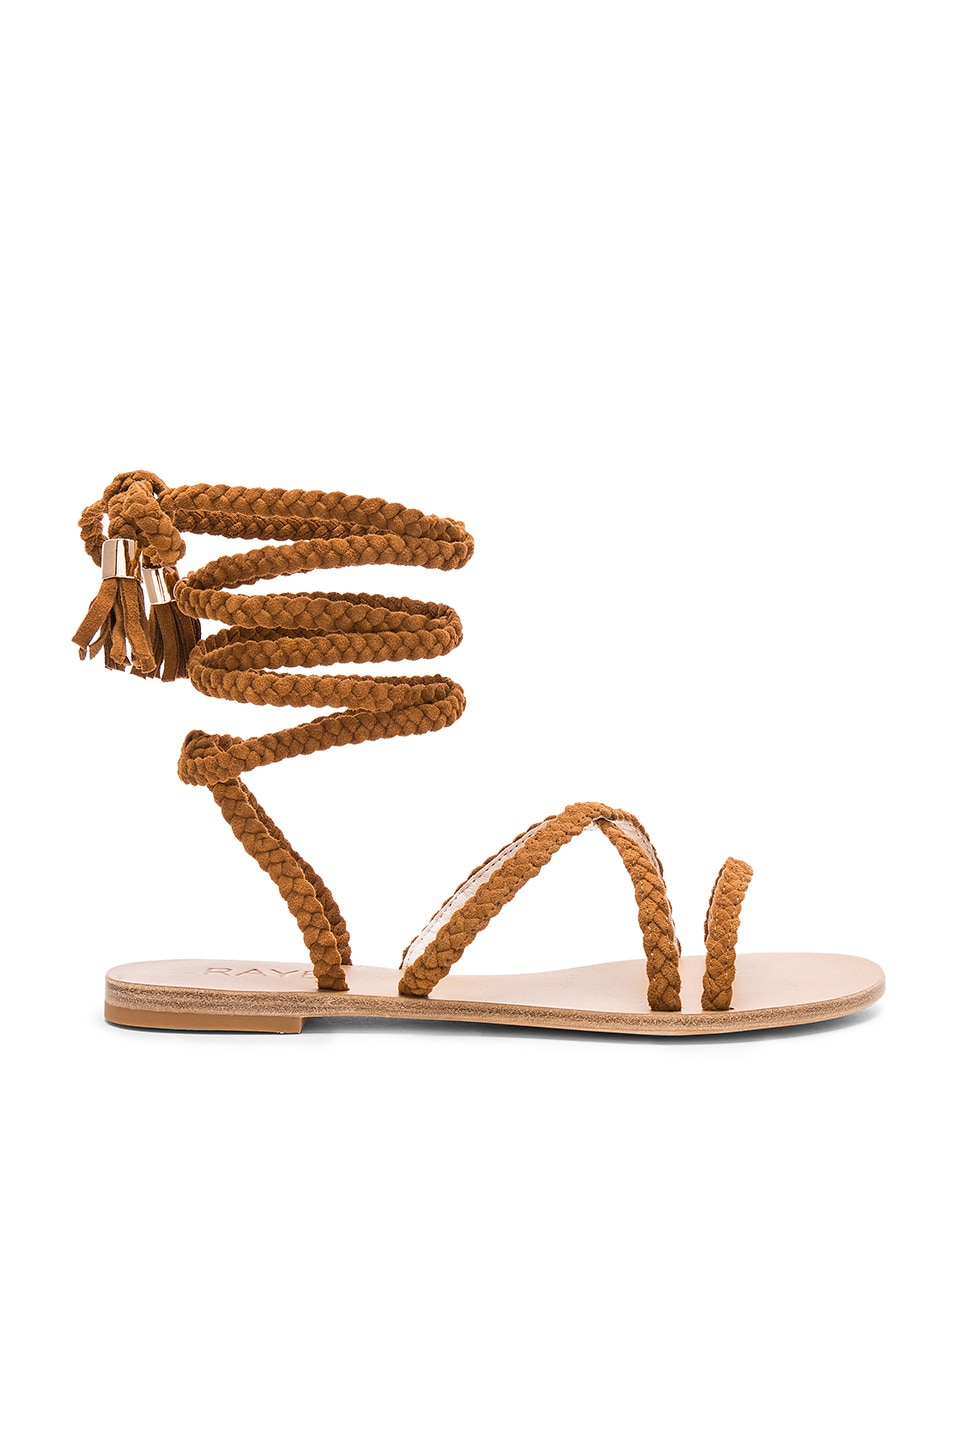 x REVOLVE Sadie Braid Sandal by Raye